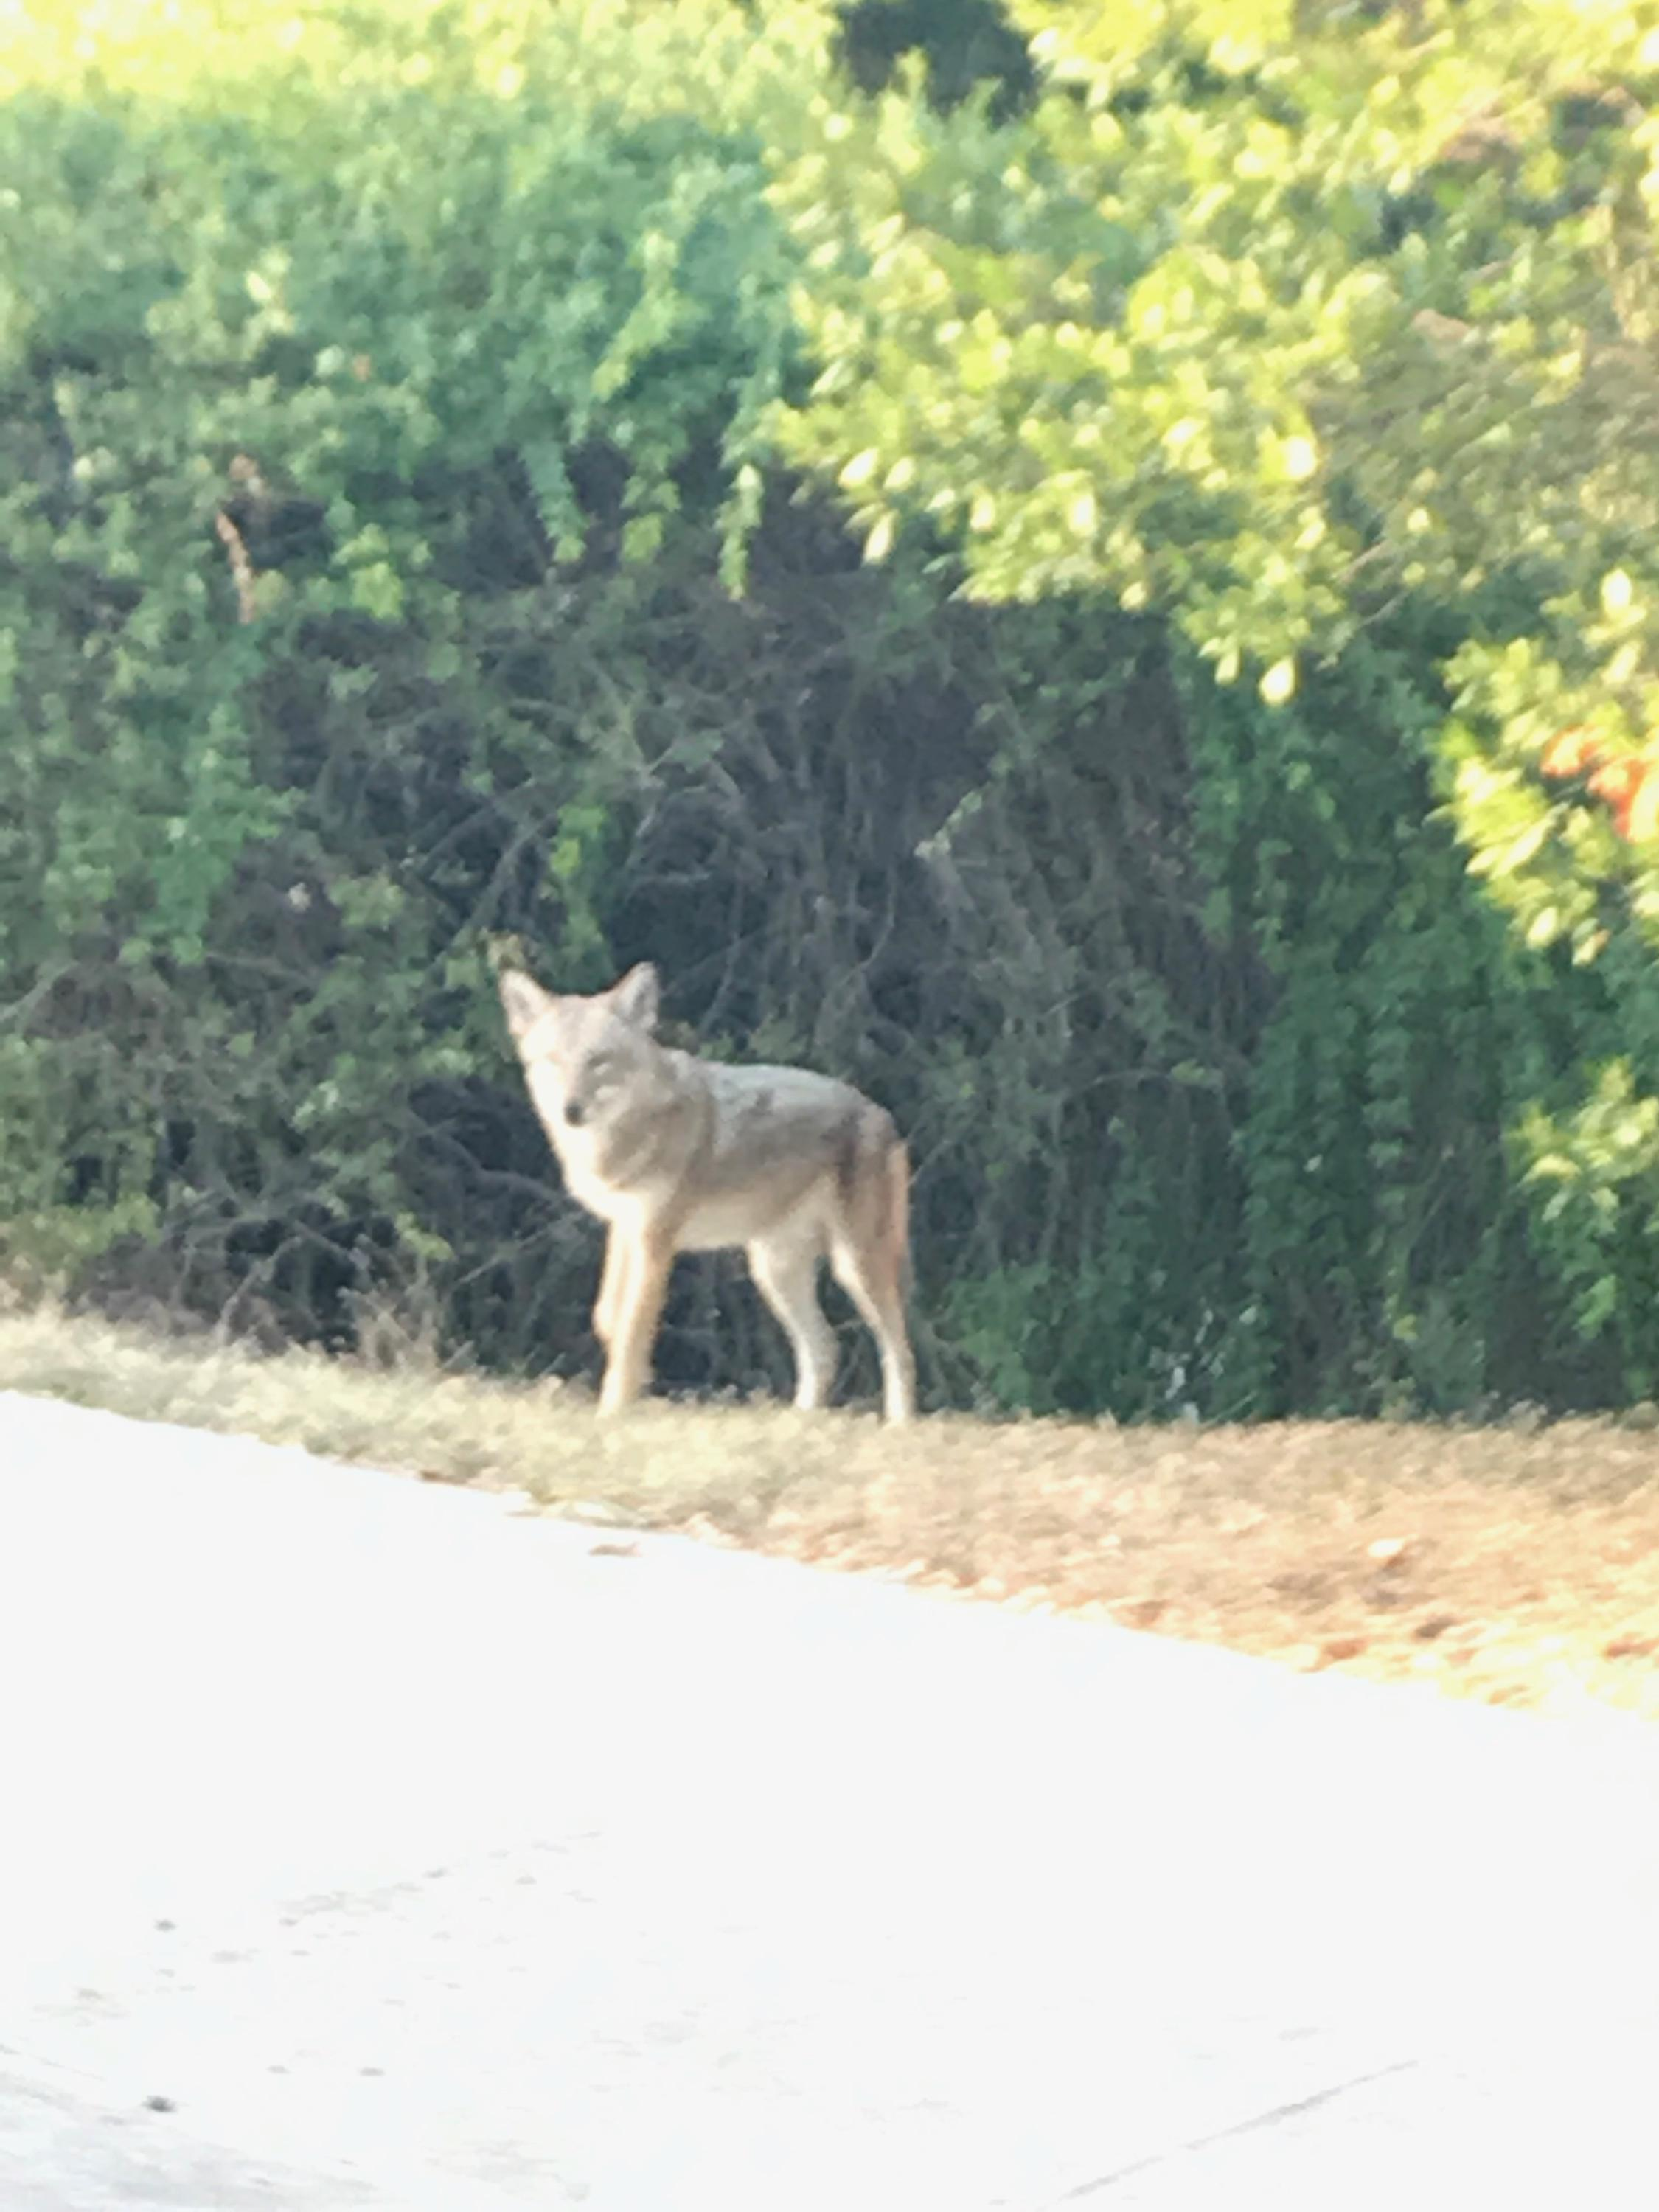 Neighbors in one Westlake community are scared after seeing coyotes more frequently. (Picture courtesy of J.J. Smith-Getman)